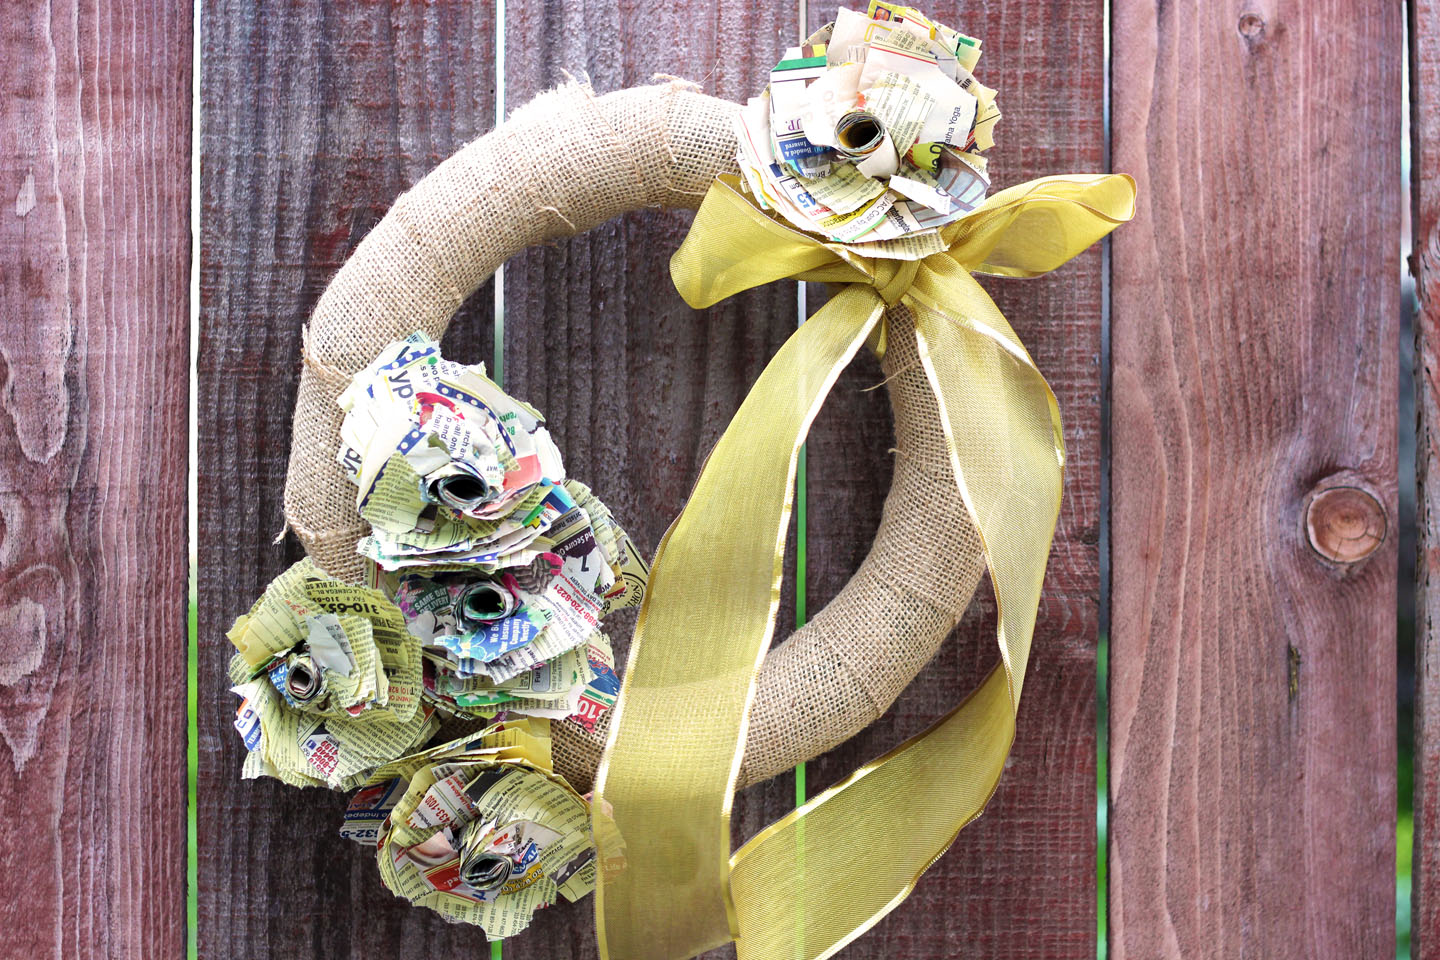 Phone book paper flowers jonathan fong style paper flowers paper roses mightylinksfo